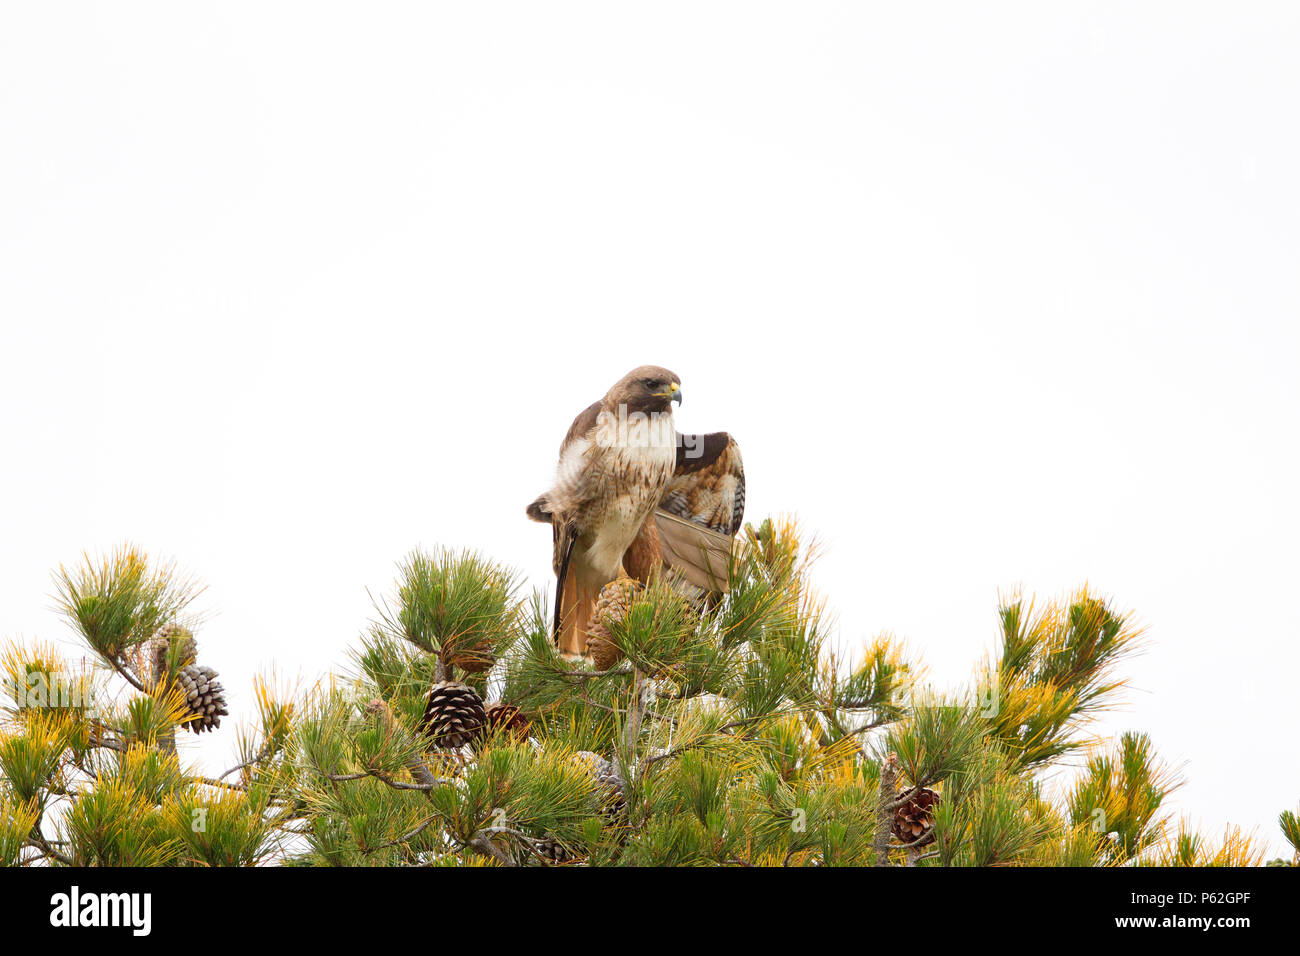 Red tailed Hawk perched on top of Pine Tree - Stock Image